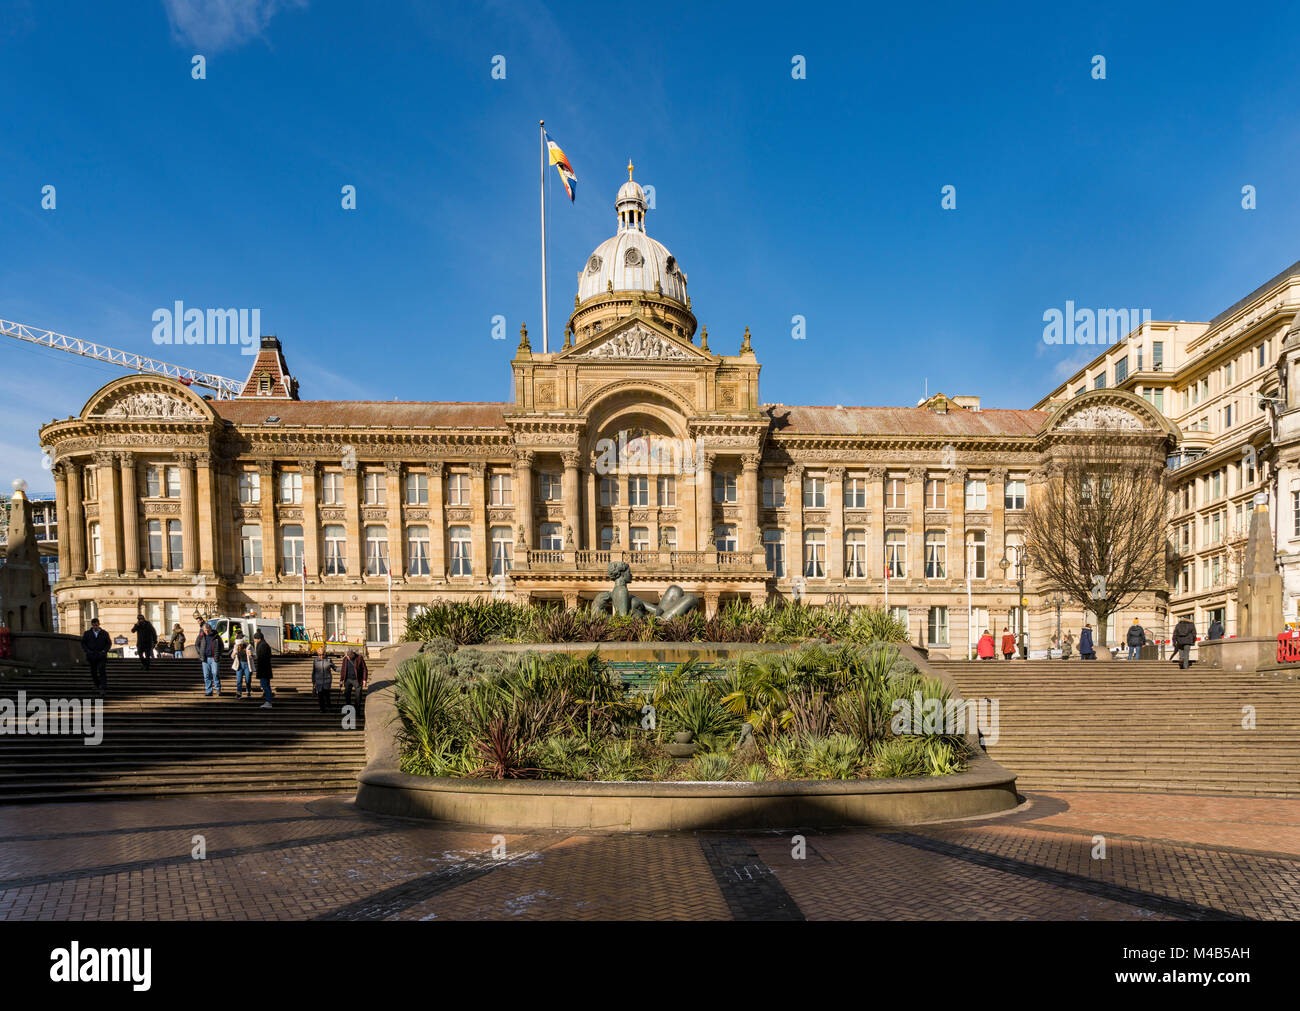 City scenes from Birmingham, UK - Stock Image